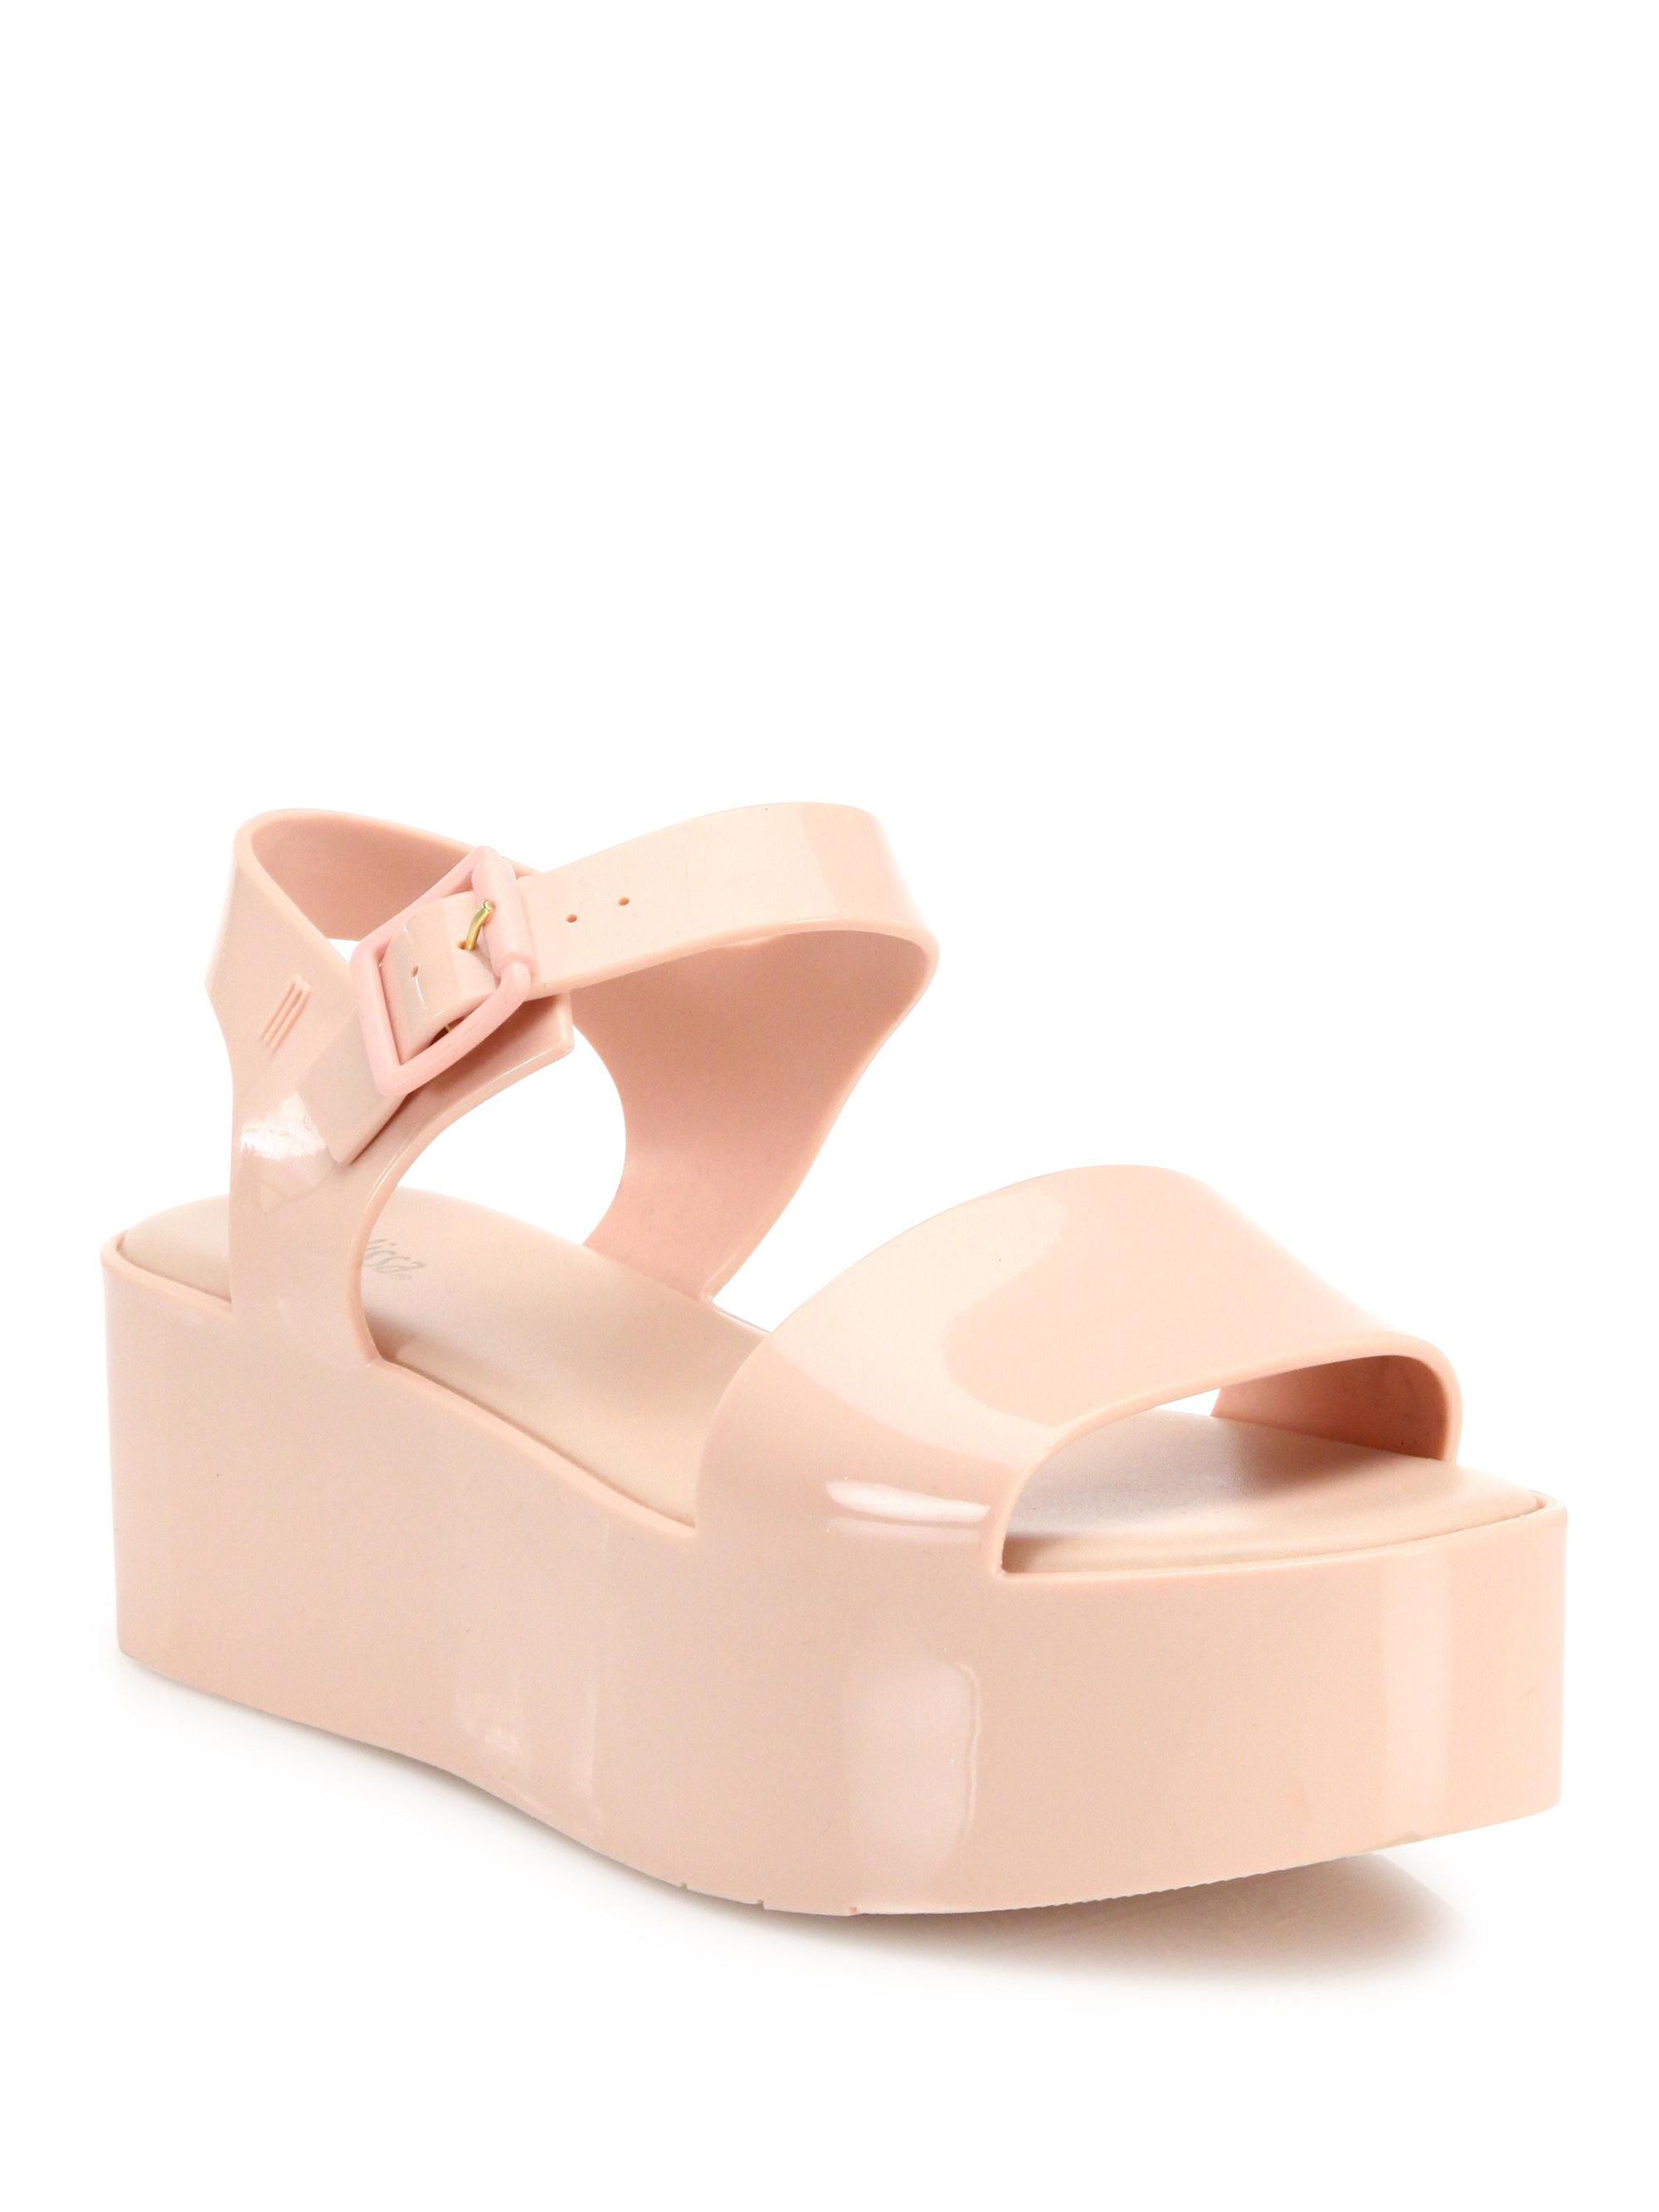 25c4e4ccce3 Lyst - Melissa Mar Jelly Platform Sandals in Pink